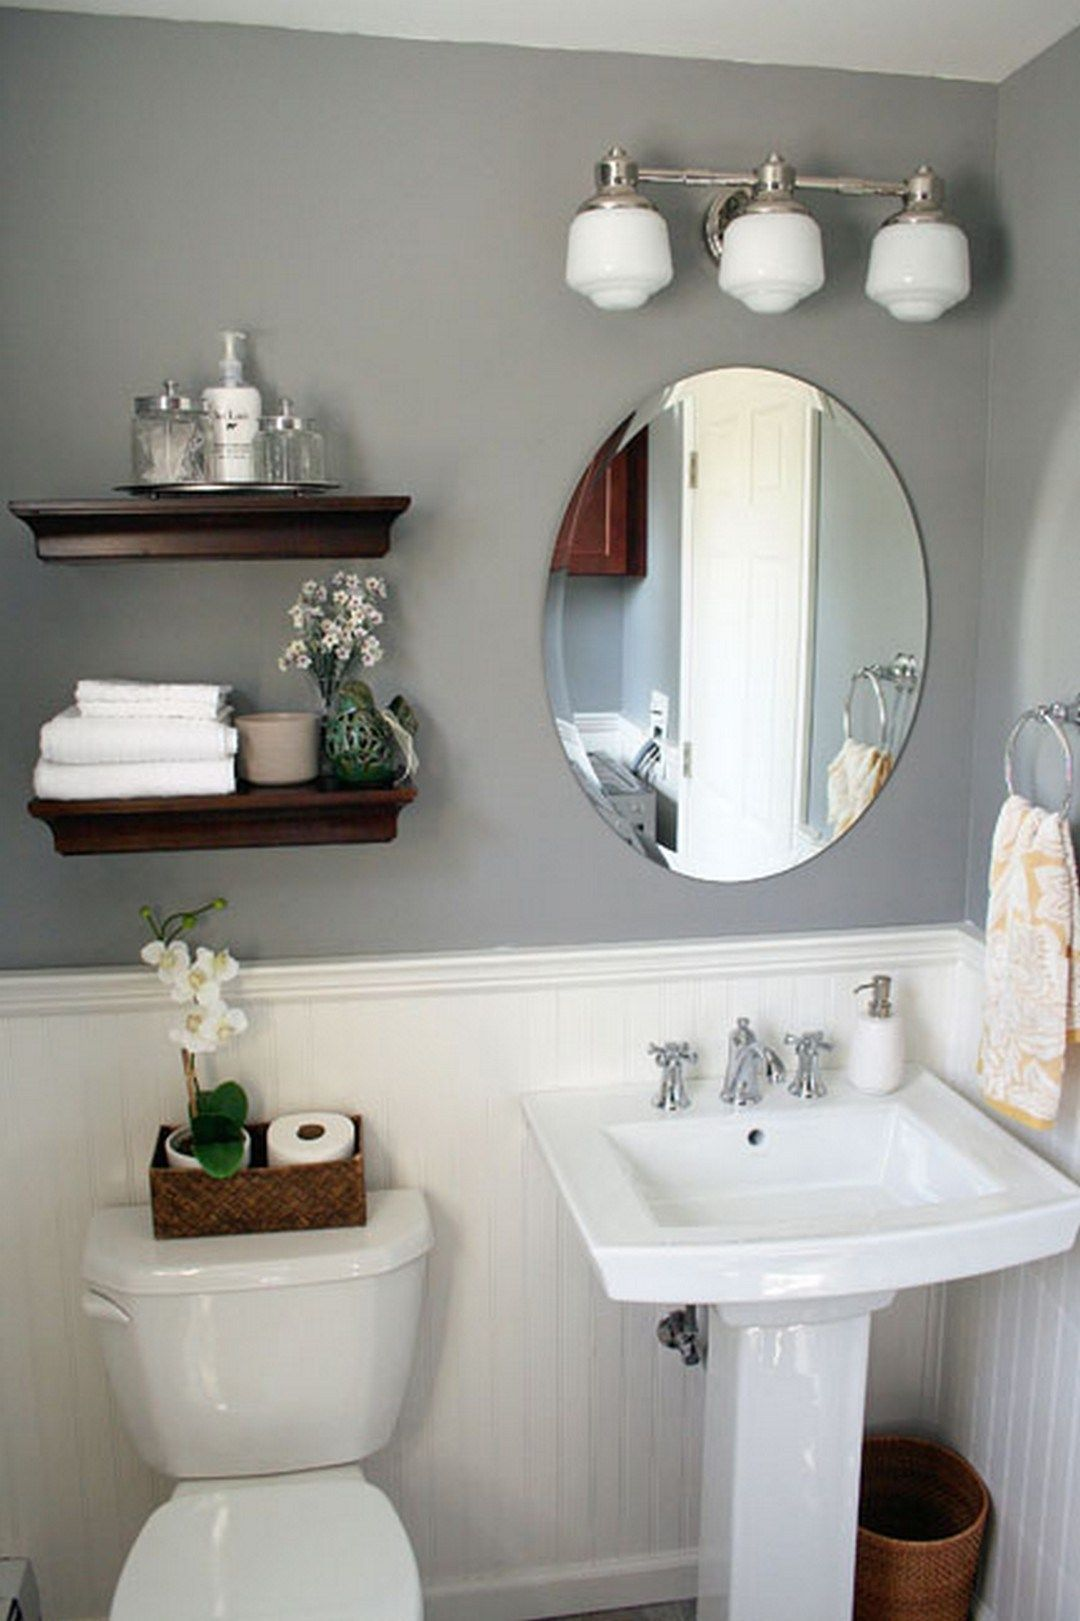 99 Small Master Bathroom Makeover Ideas On A Budget (70 ...